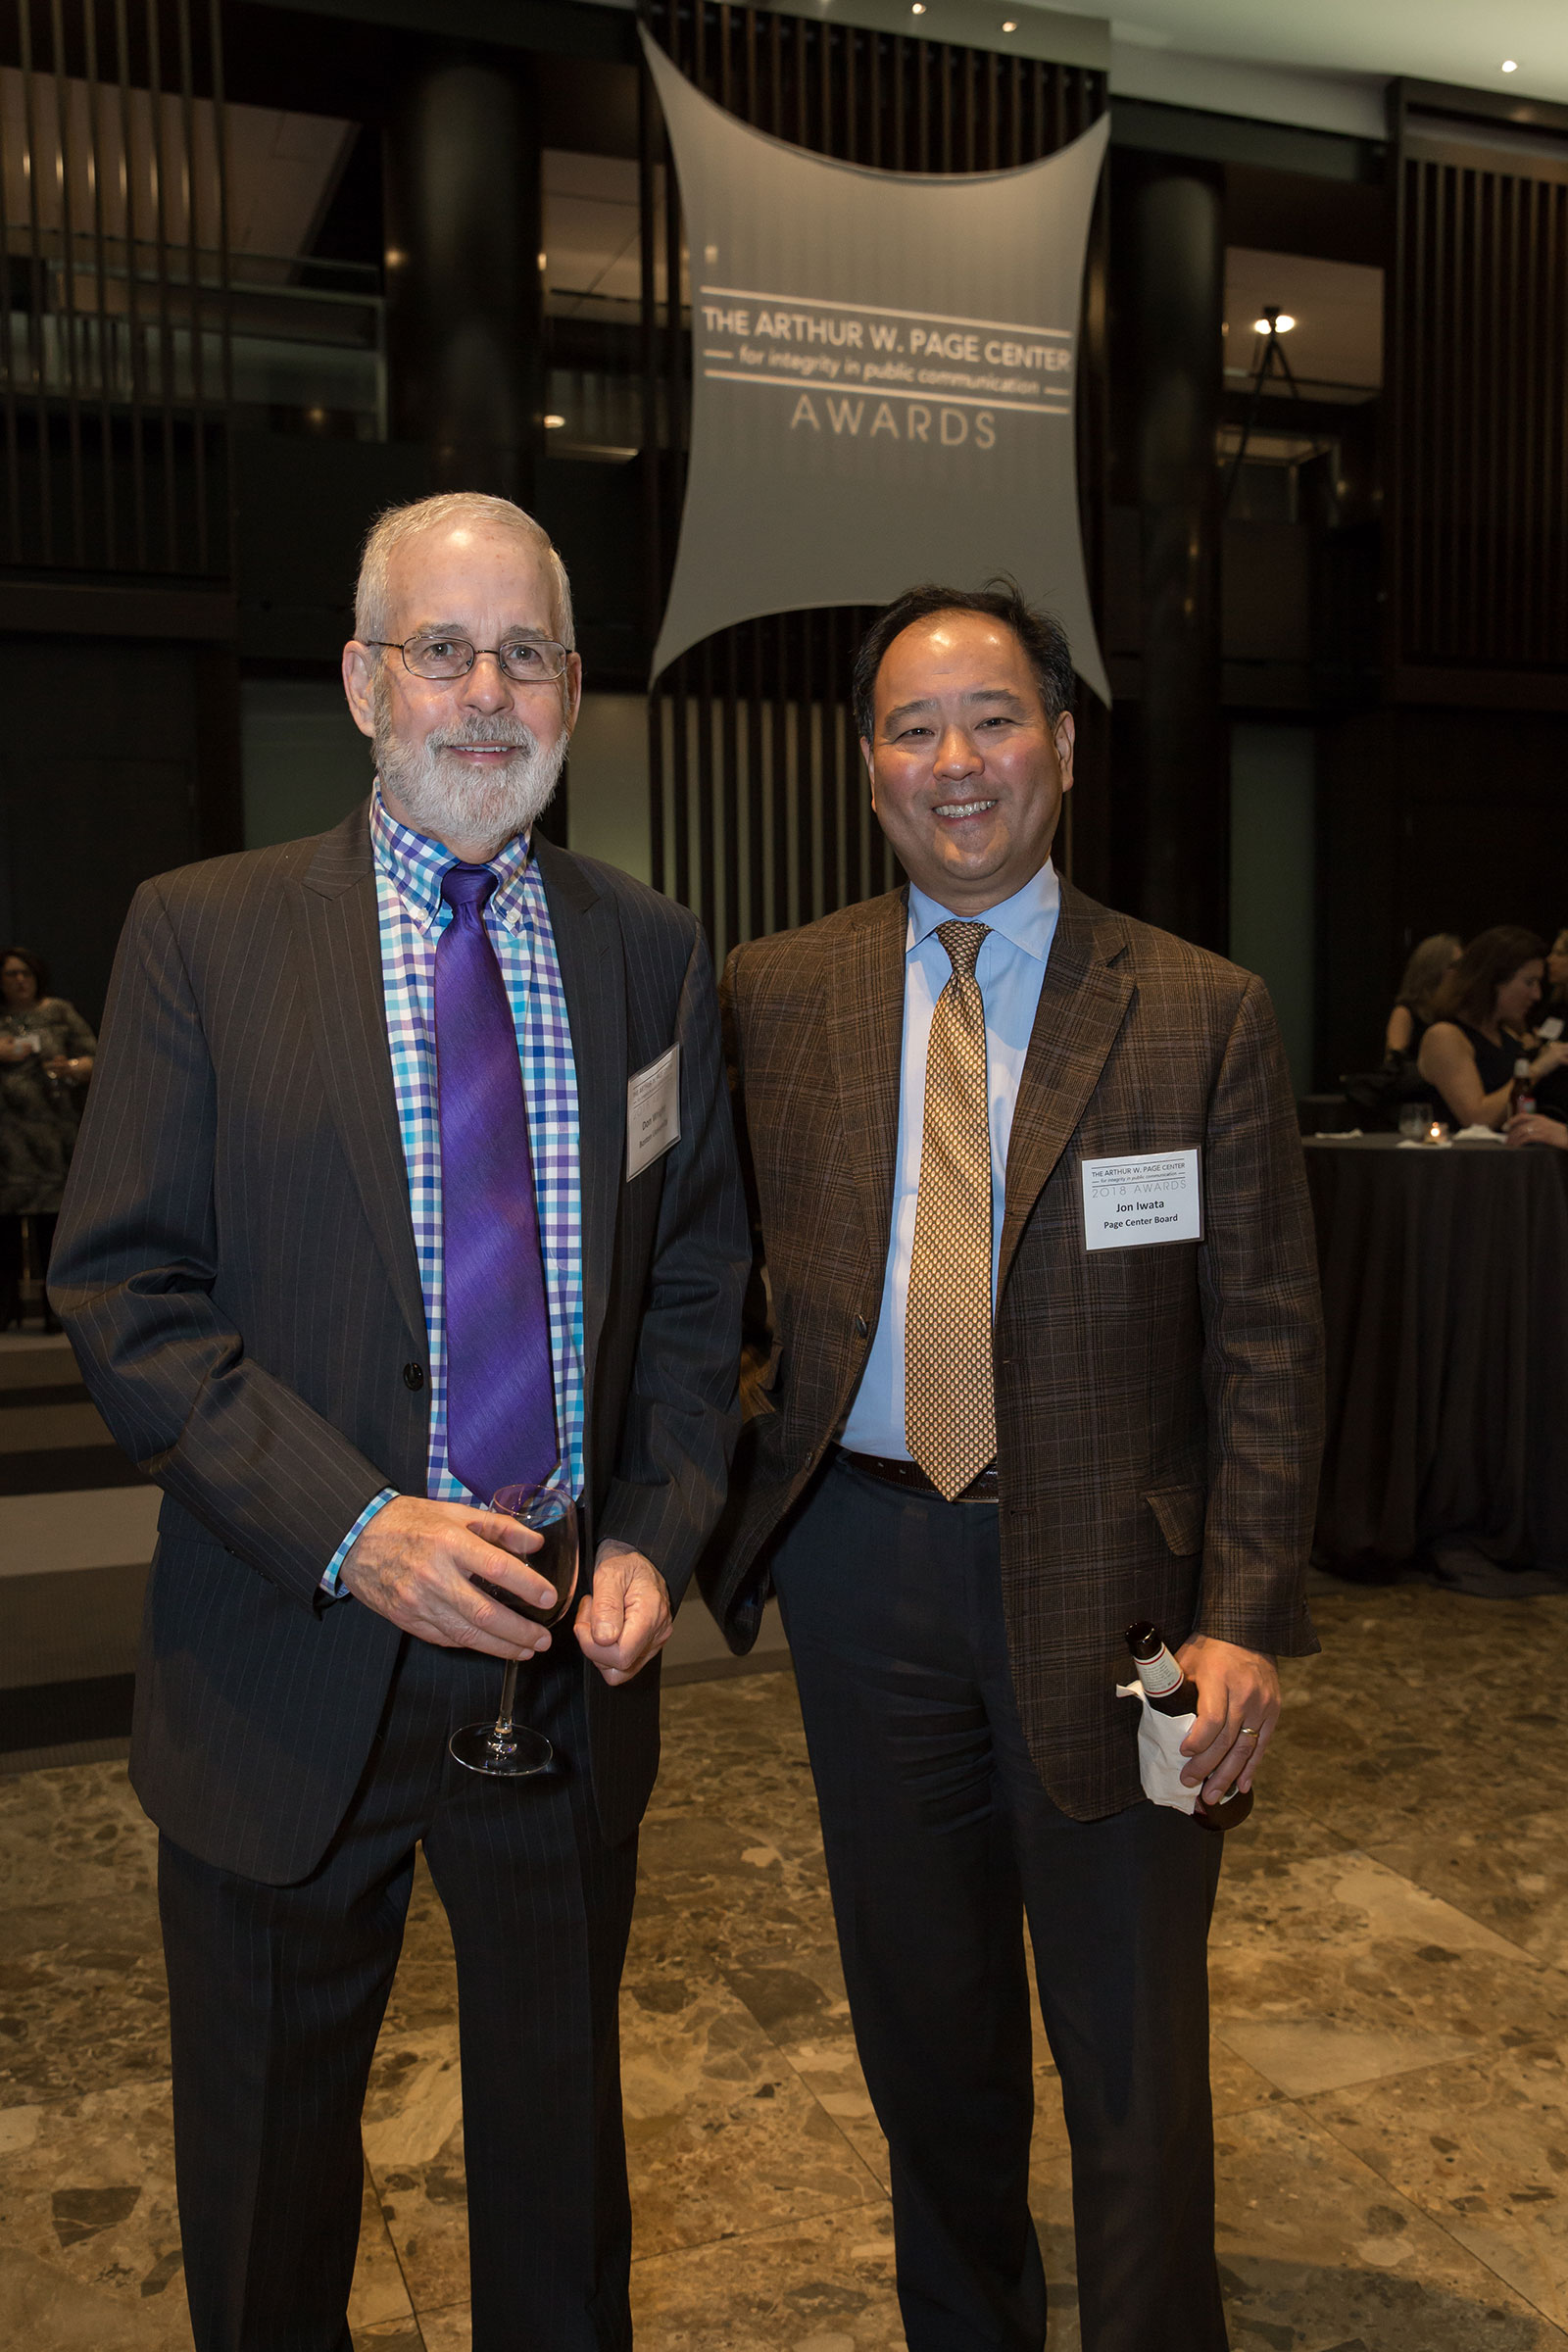 Don Wright (left) and Jon Iwata stop for a picture at the Arthur W. Page Center Awards.